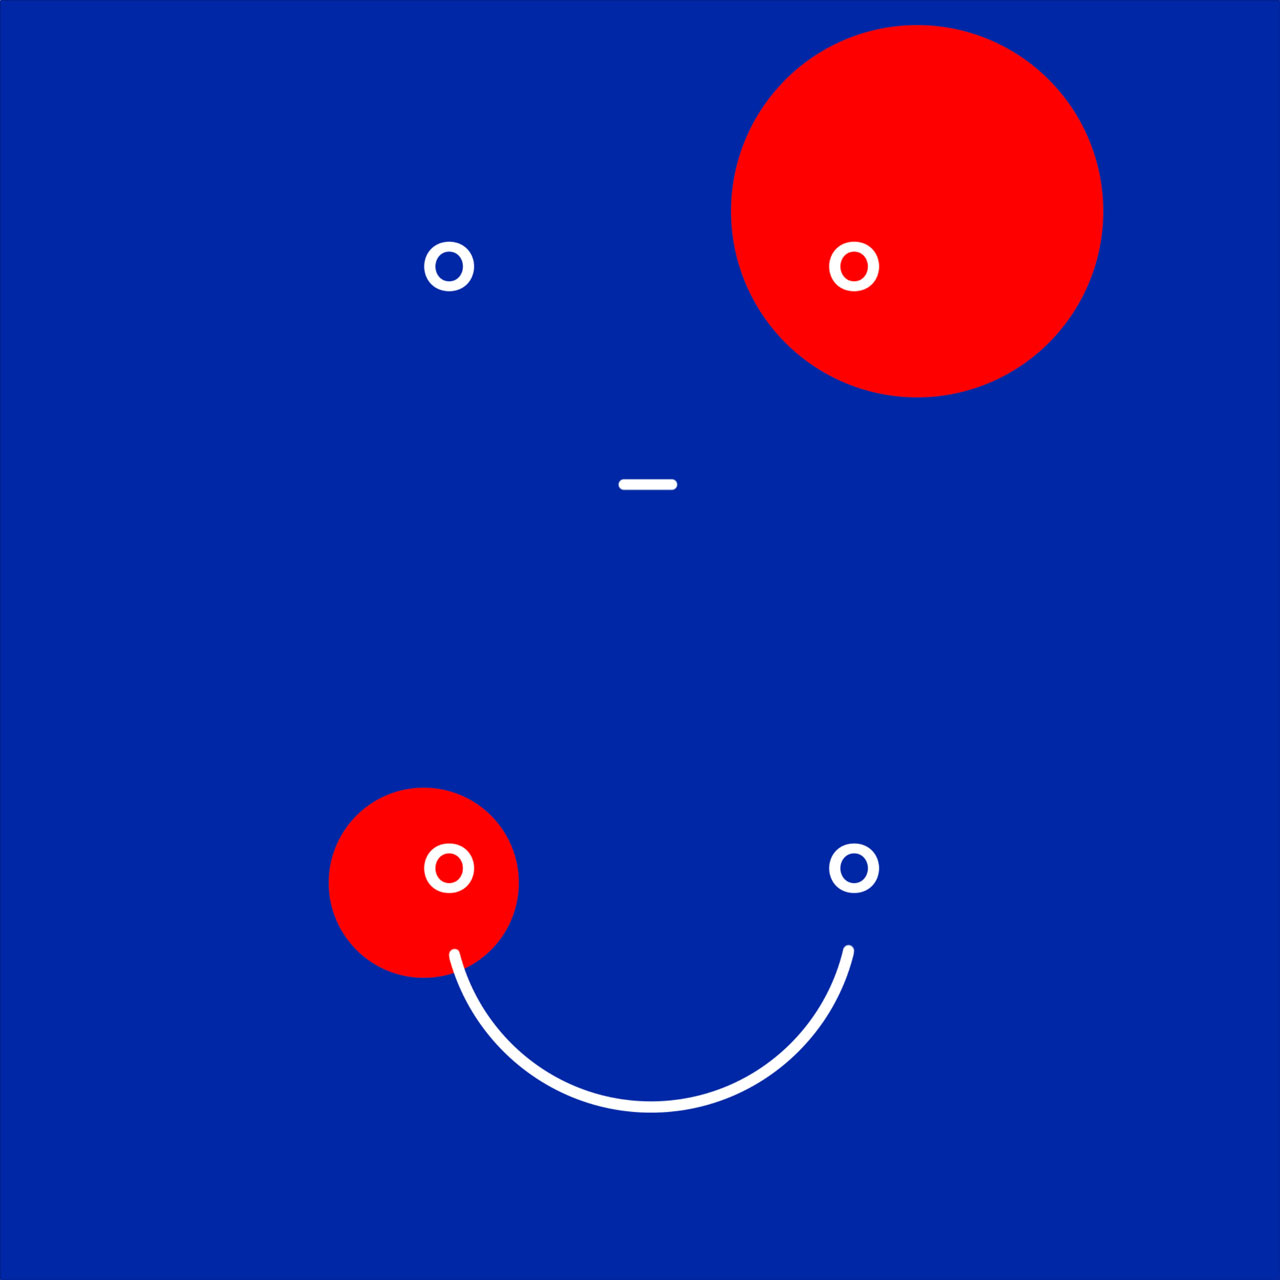 Album cover with blue background and two red dots and white lines making smile